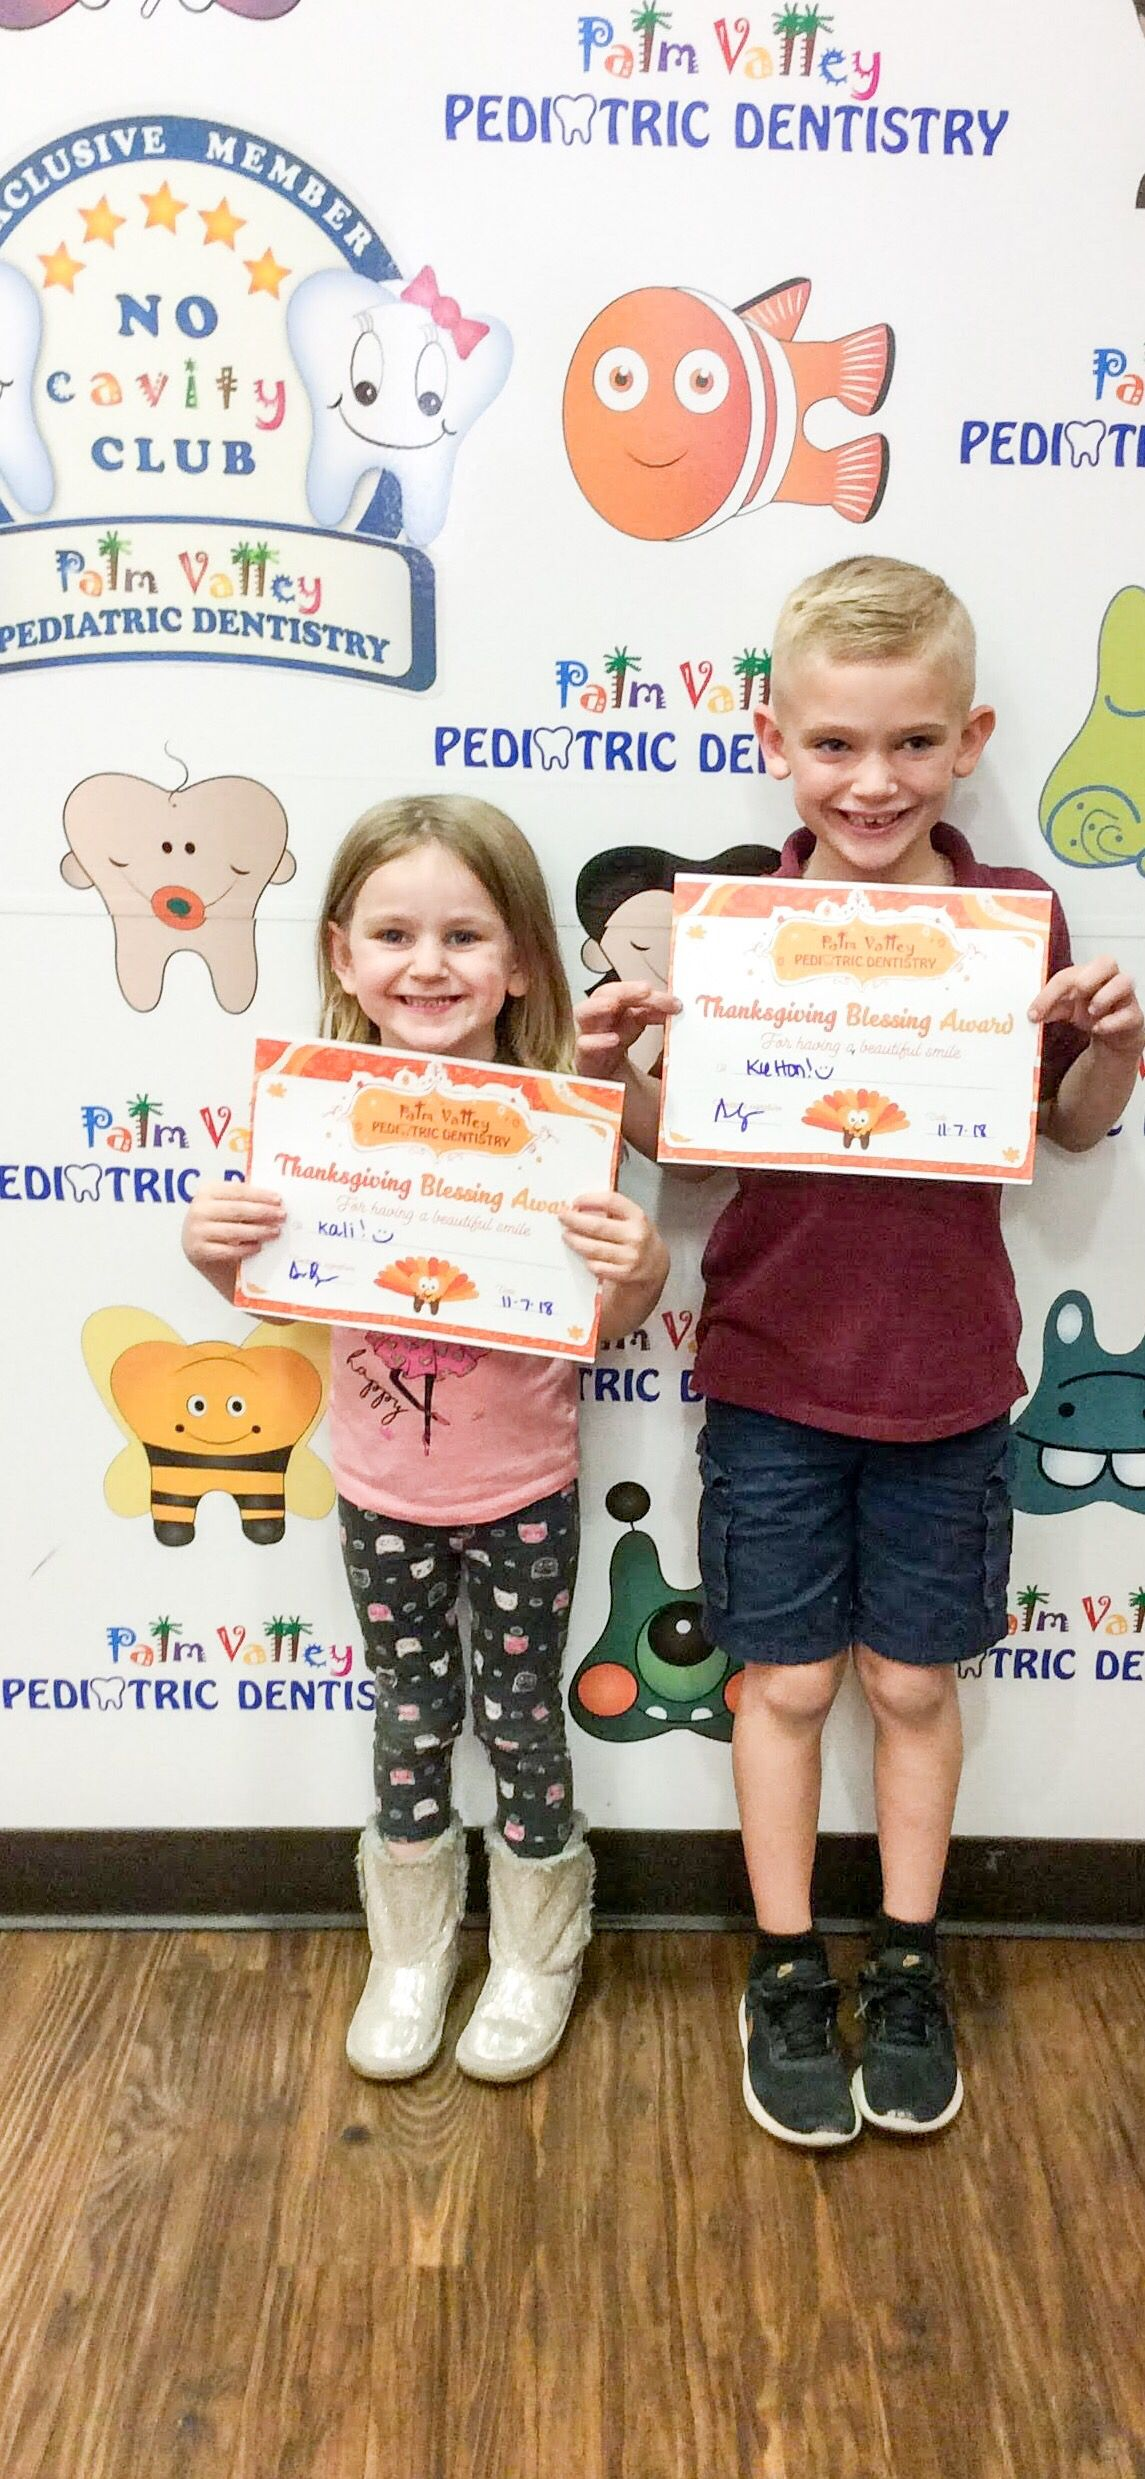 Palm valley pediatric dentistry orthodontics with